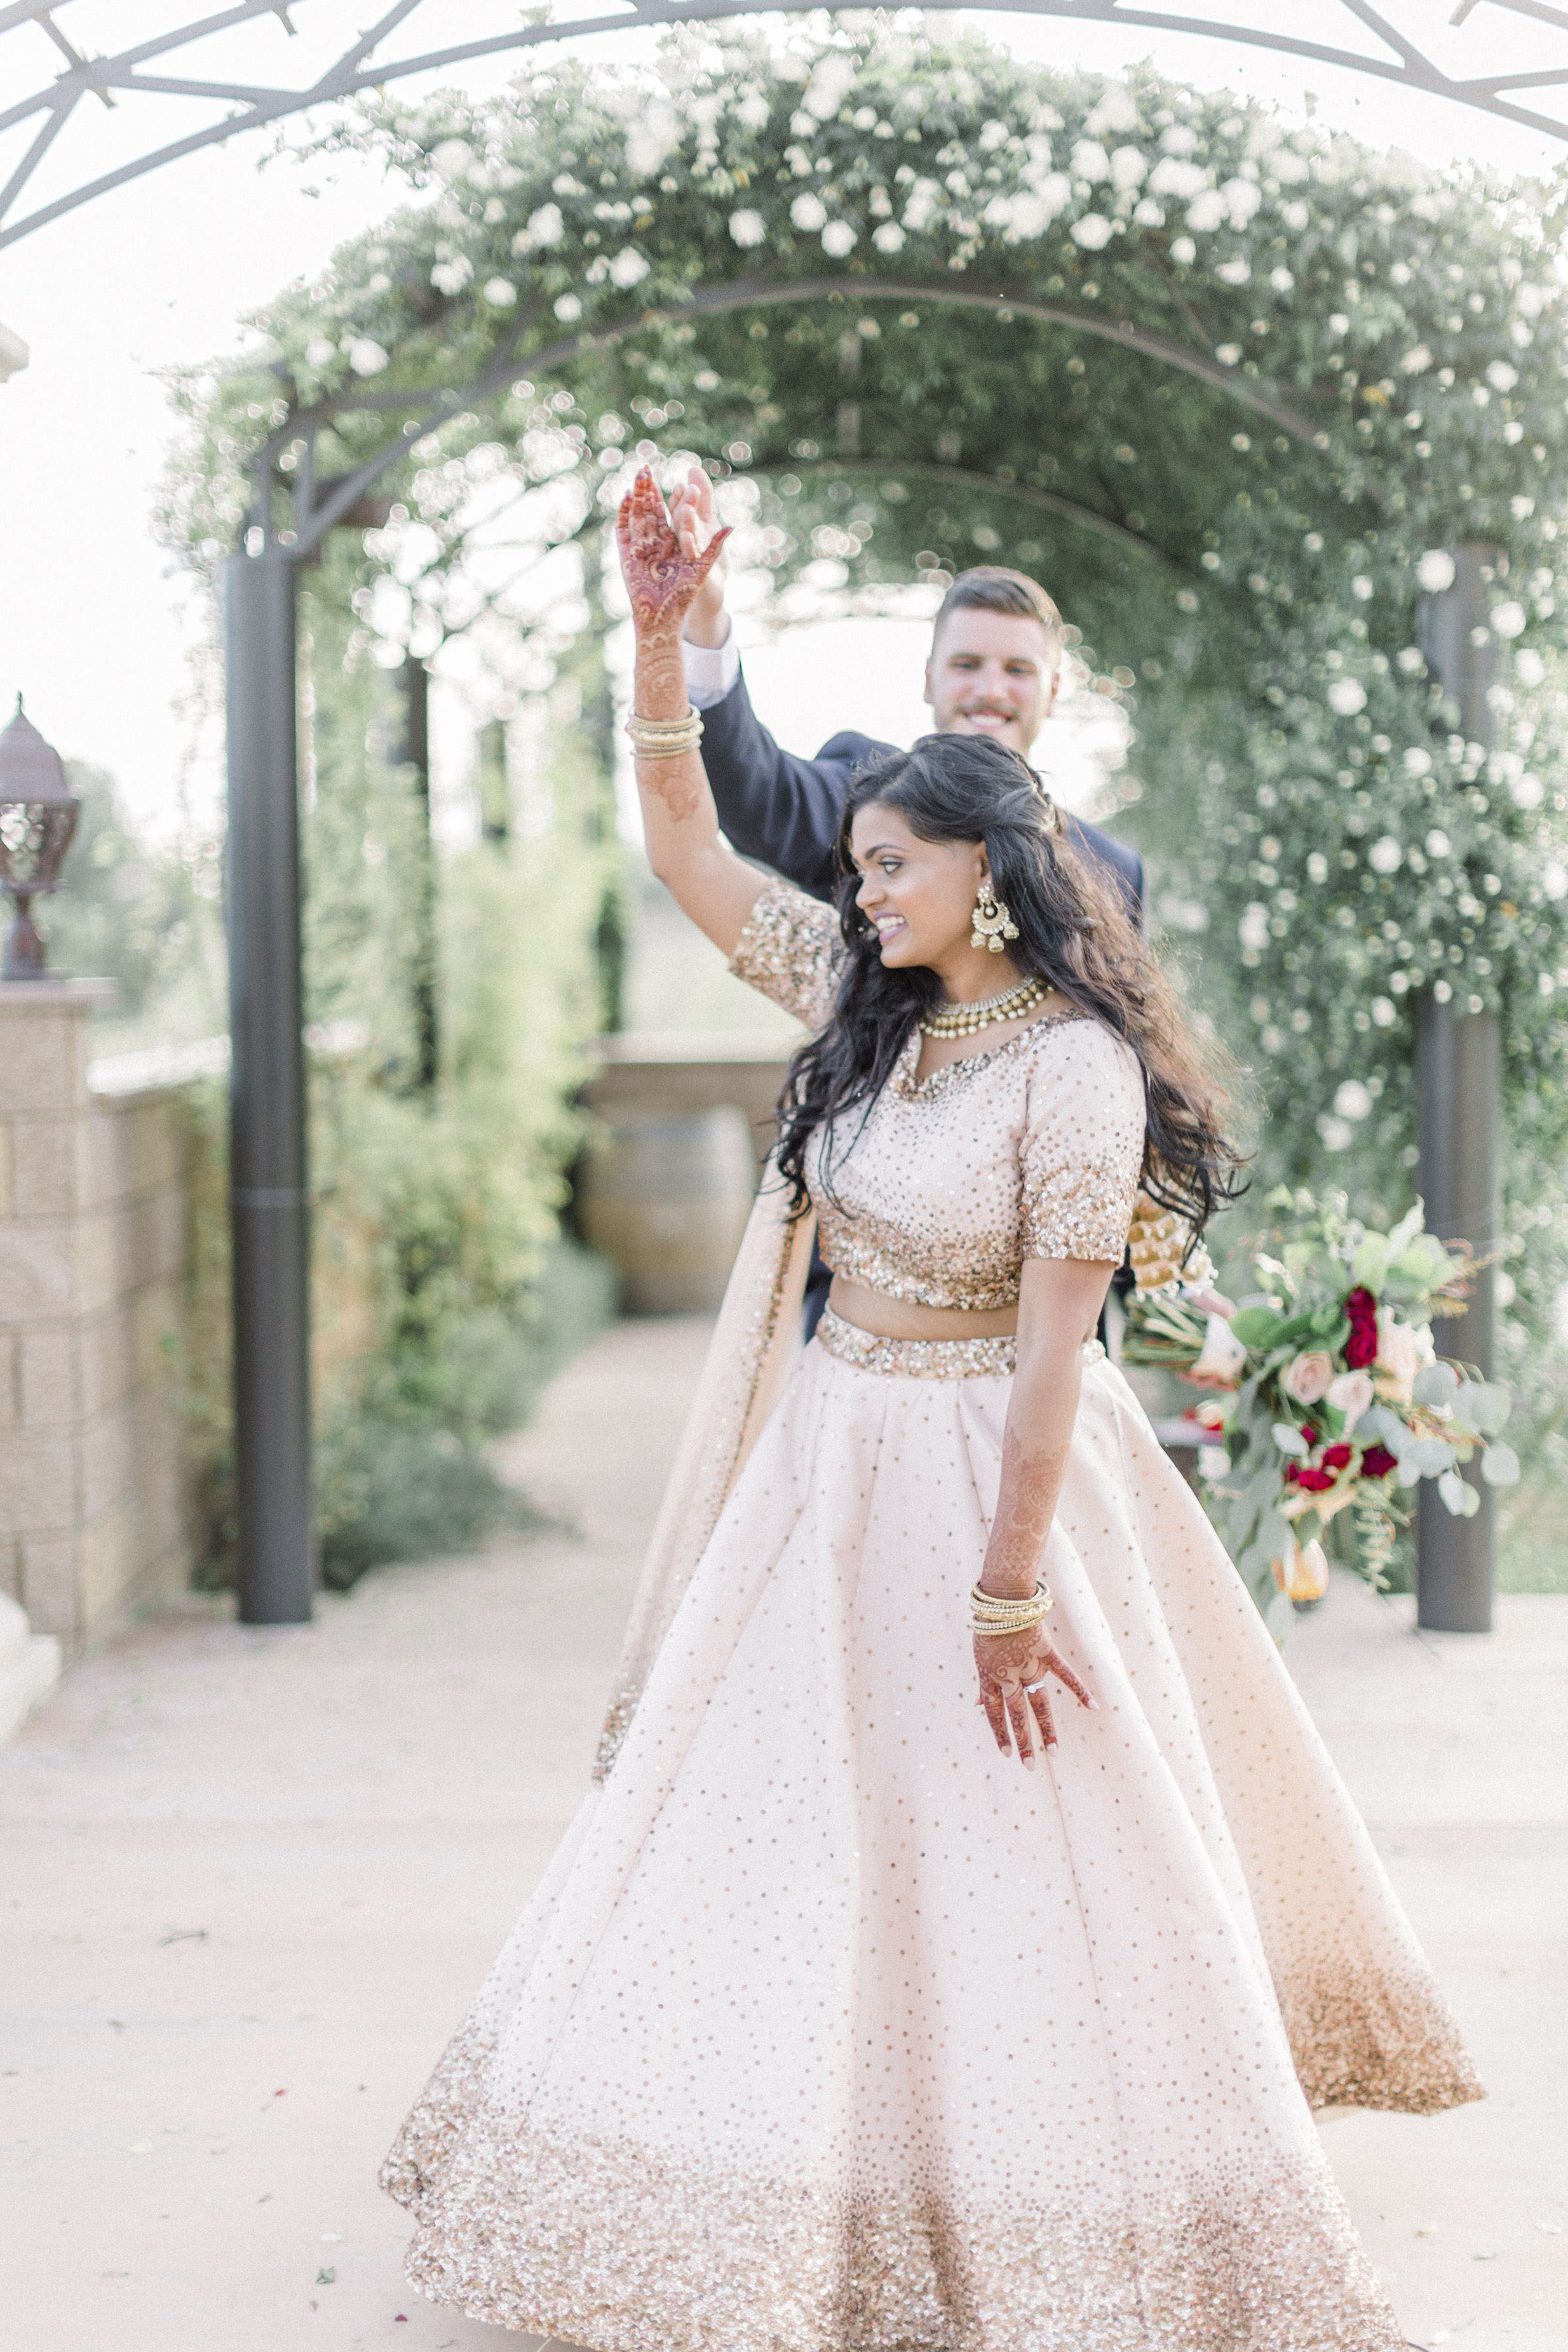 Domenica Beauty _ Hair and Makeup Artist _Wedding _ Temecula, CA _ Pratishtha and Christopher _ 17.JPG